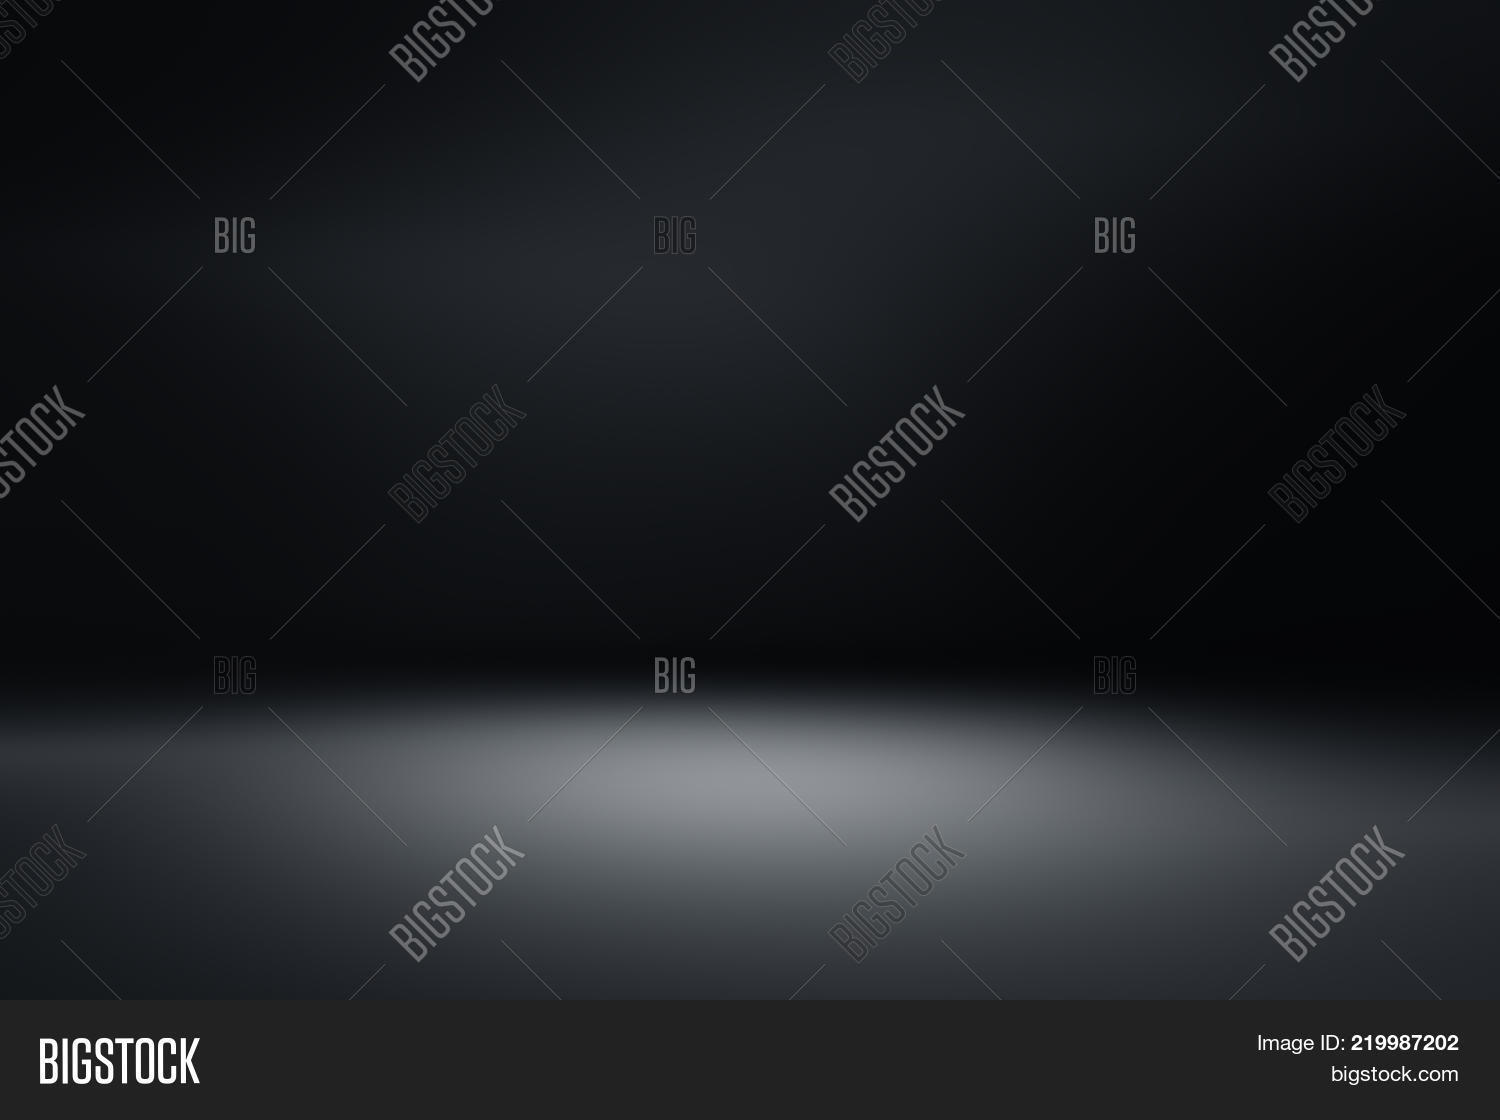 artwork,back,backdrop,background,black,blank,blur,blurred,blurry,board,bright,clean,creative,dark,decoration,design,display,drop,empty,floor,frame,gradient,graphic,gray,grey,ground,grunge,illustration,inside,interior,light,modern,pattern,perspective,photo,plain,product,room,simple,smooth,space,spotlight,stage,studio,style,template,texture,wall,wallpaper,white